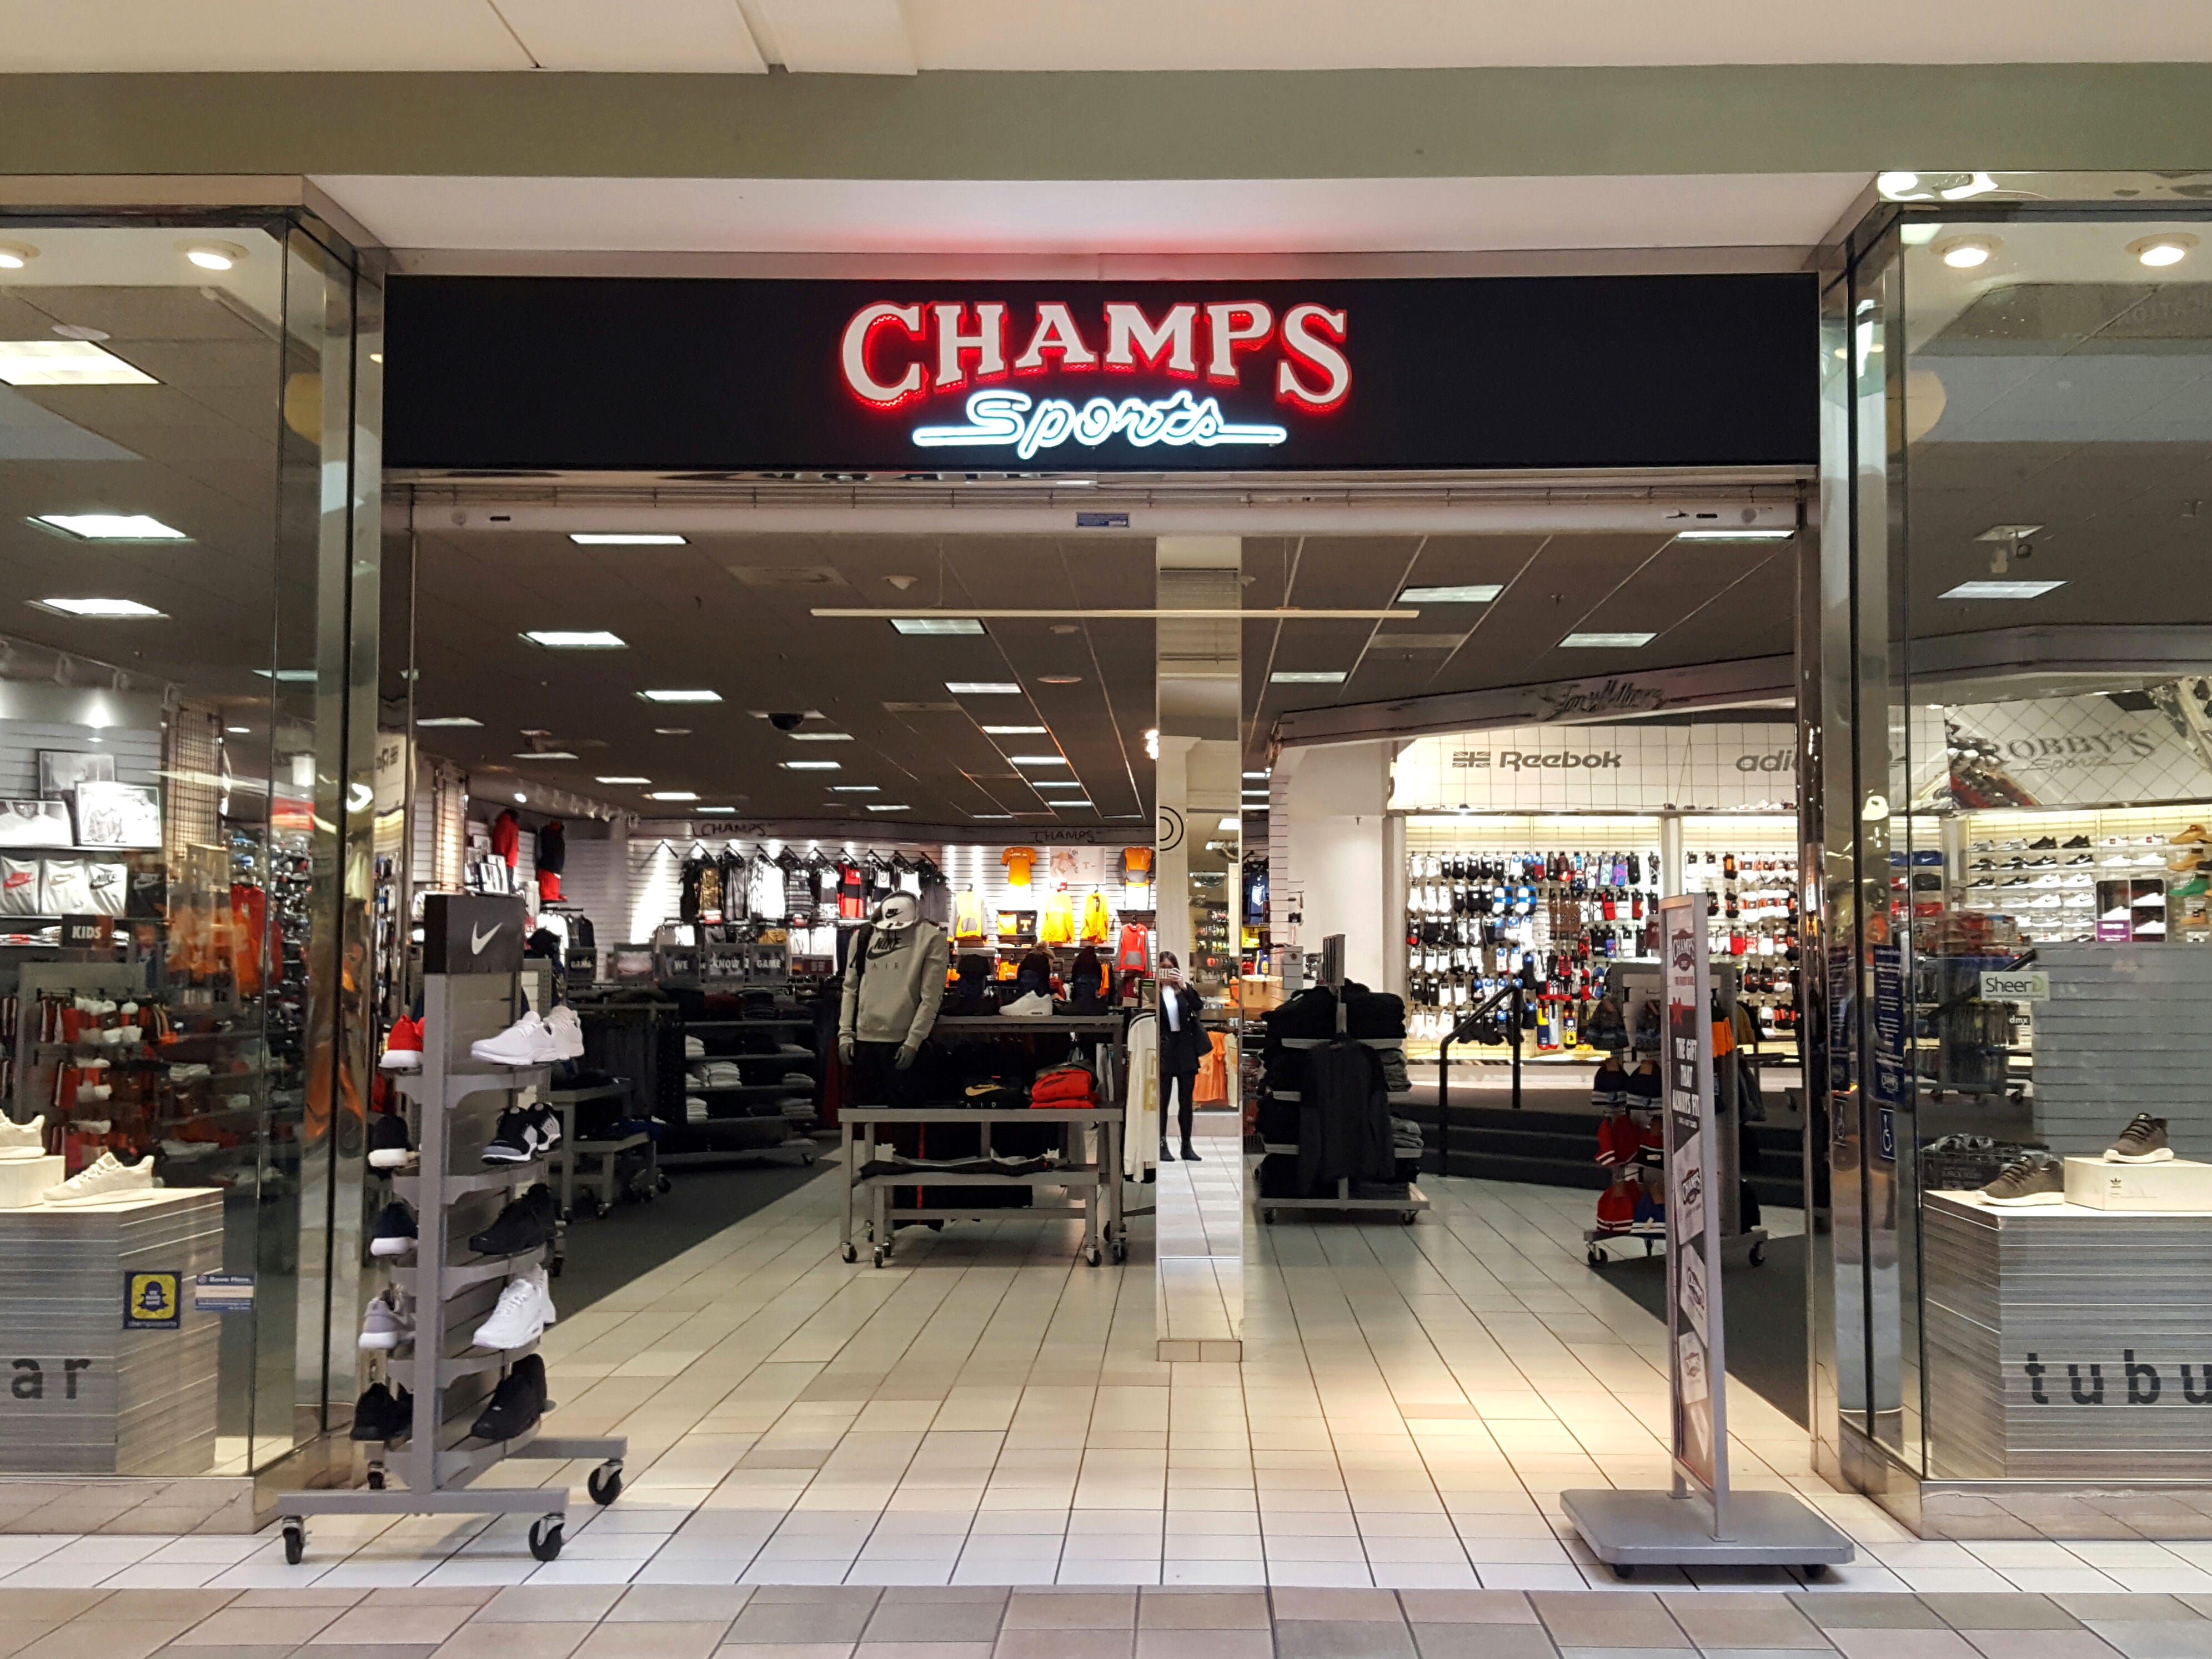 Champs Sports is expected to close its store at the Knoxville Center Mall.